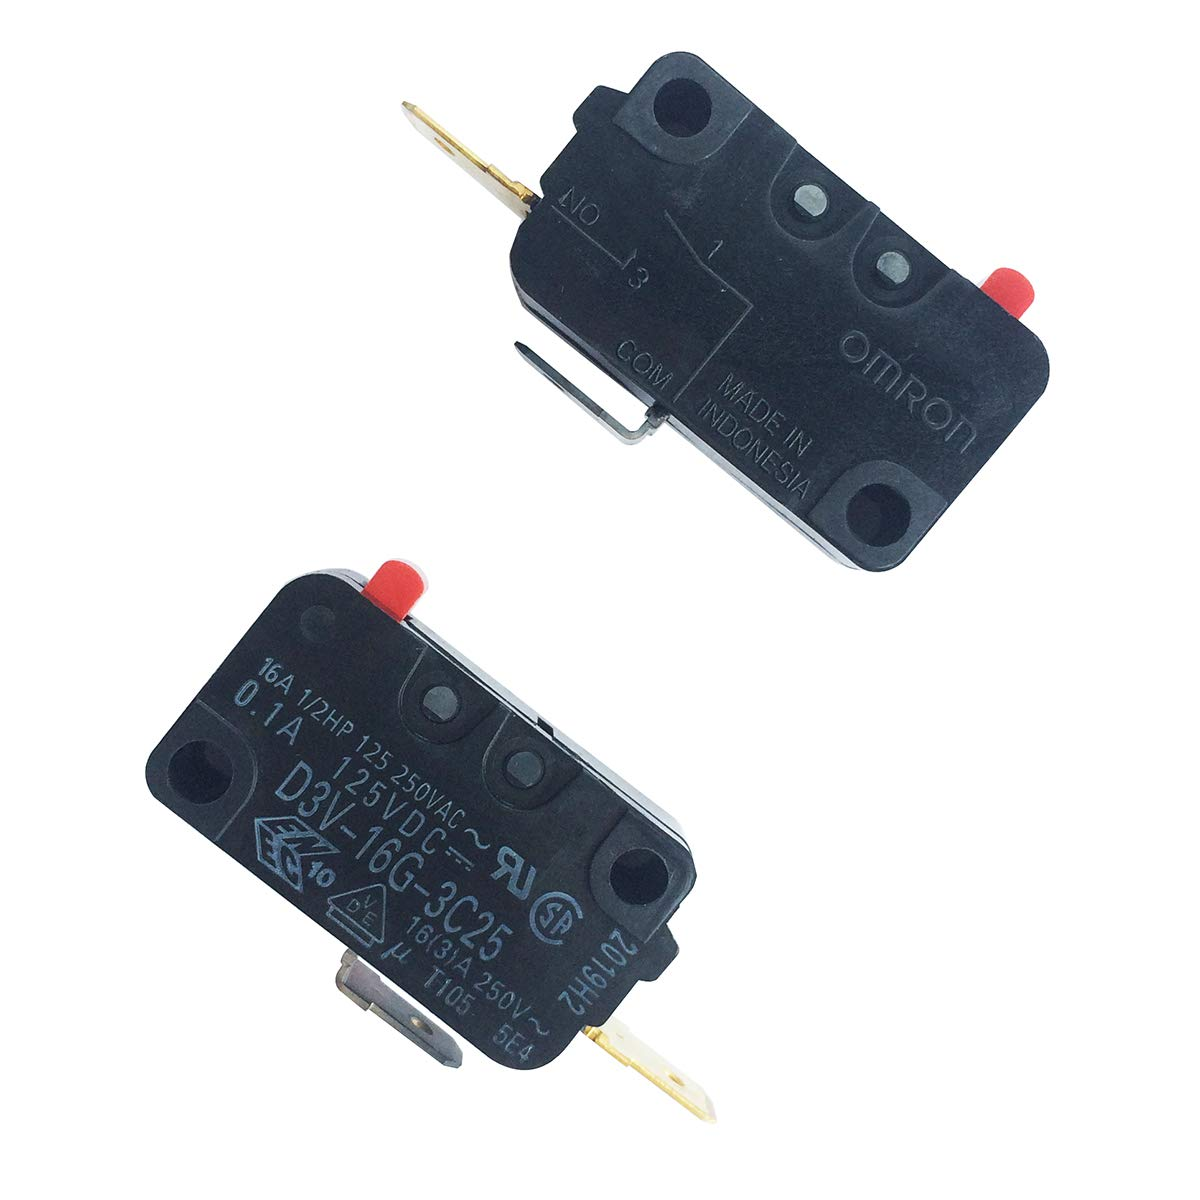 LONYE SZM-V16-FC-63 28QBP0497 Microwave Oven Door Micro Switch for Whirlpool Amana W10269460 PS2361113 AP4429920 V-16G-3C25-K(Normally Open)(Pack of 2)